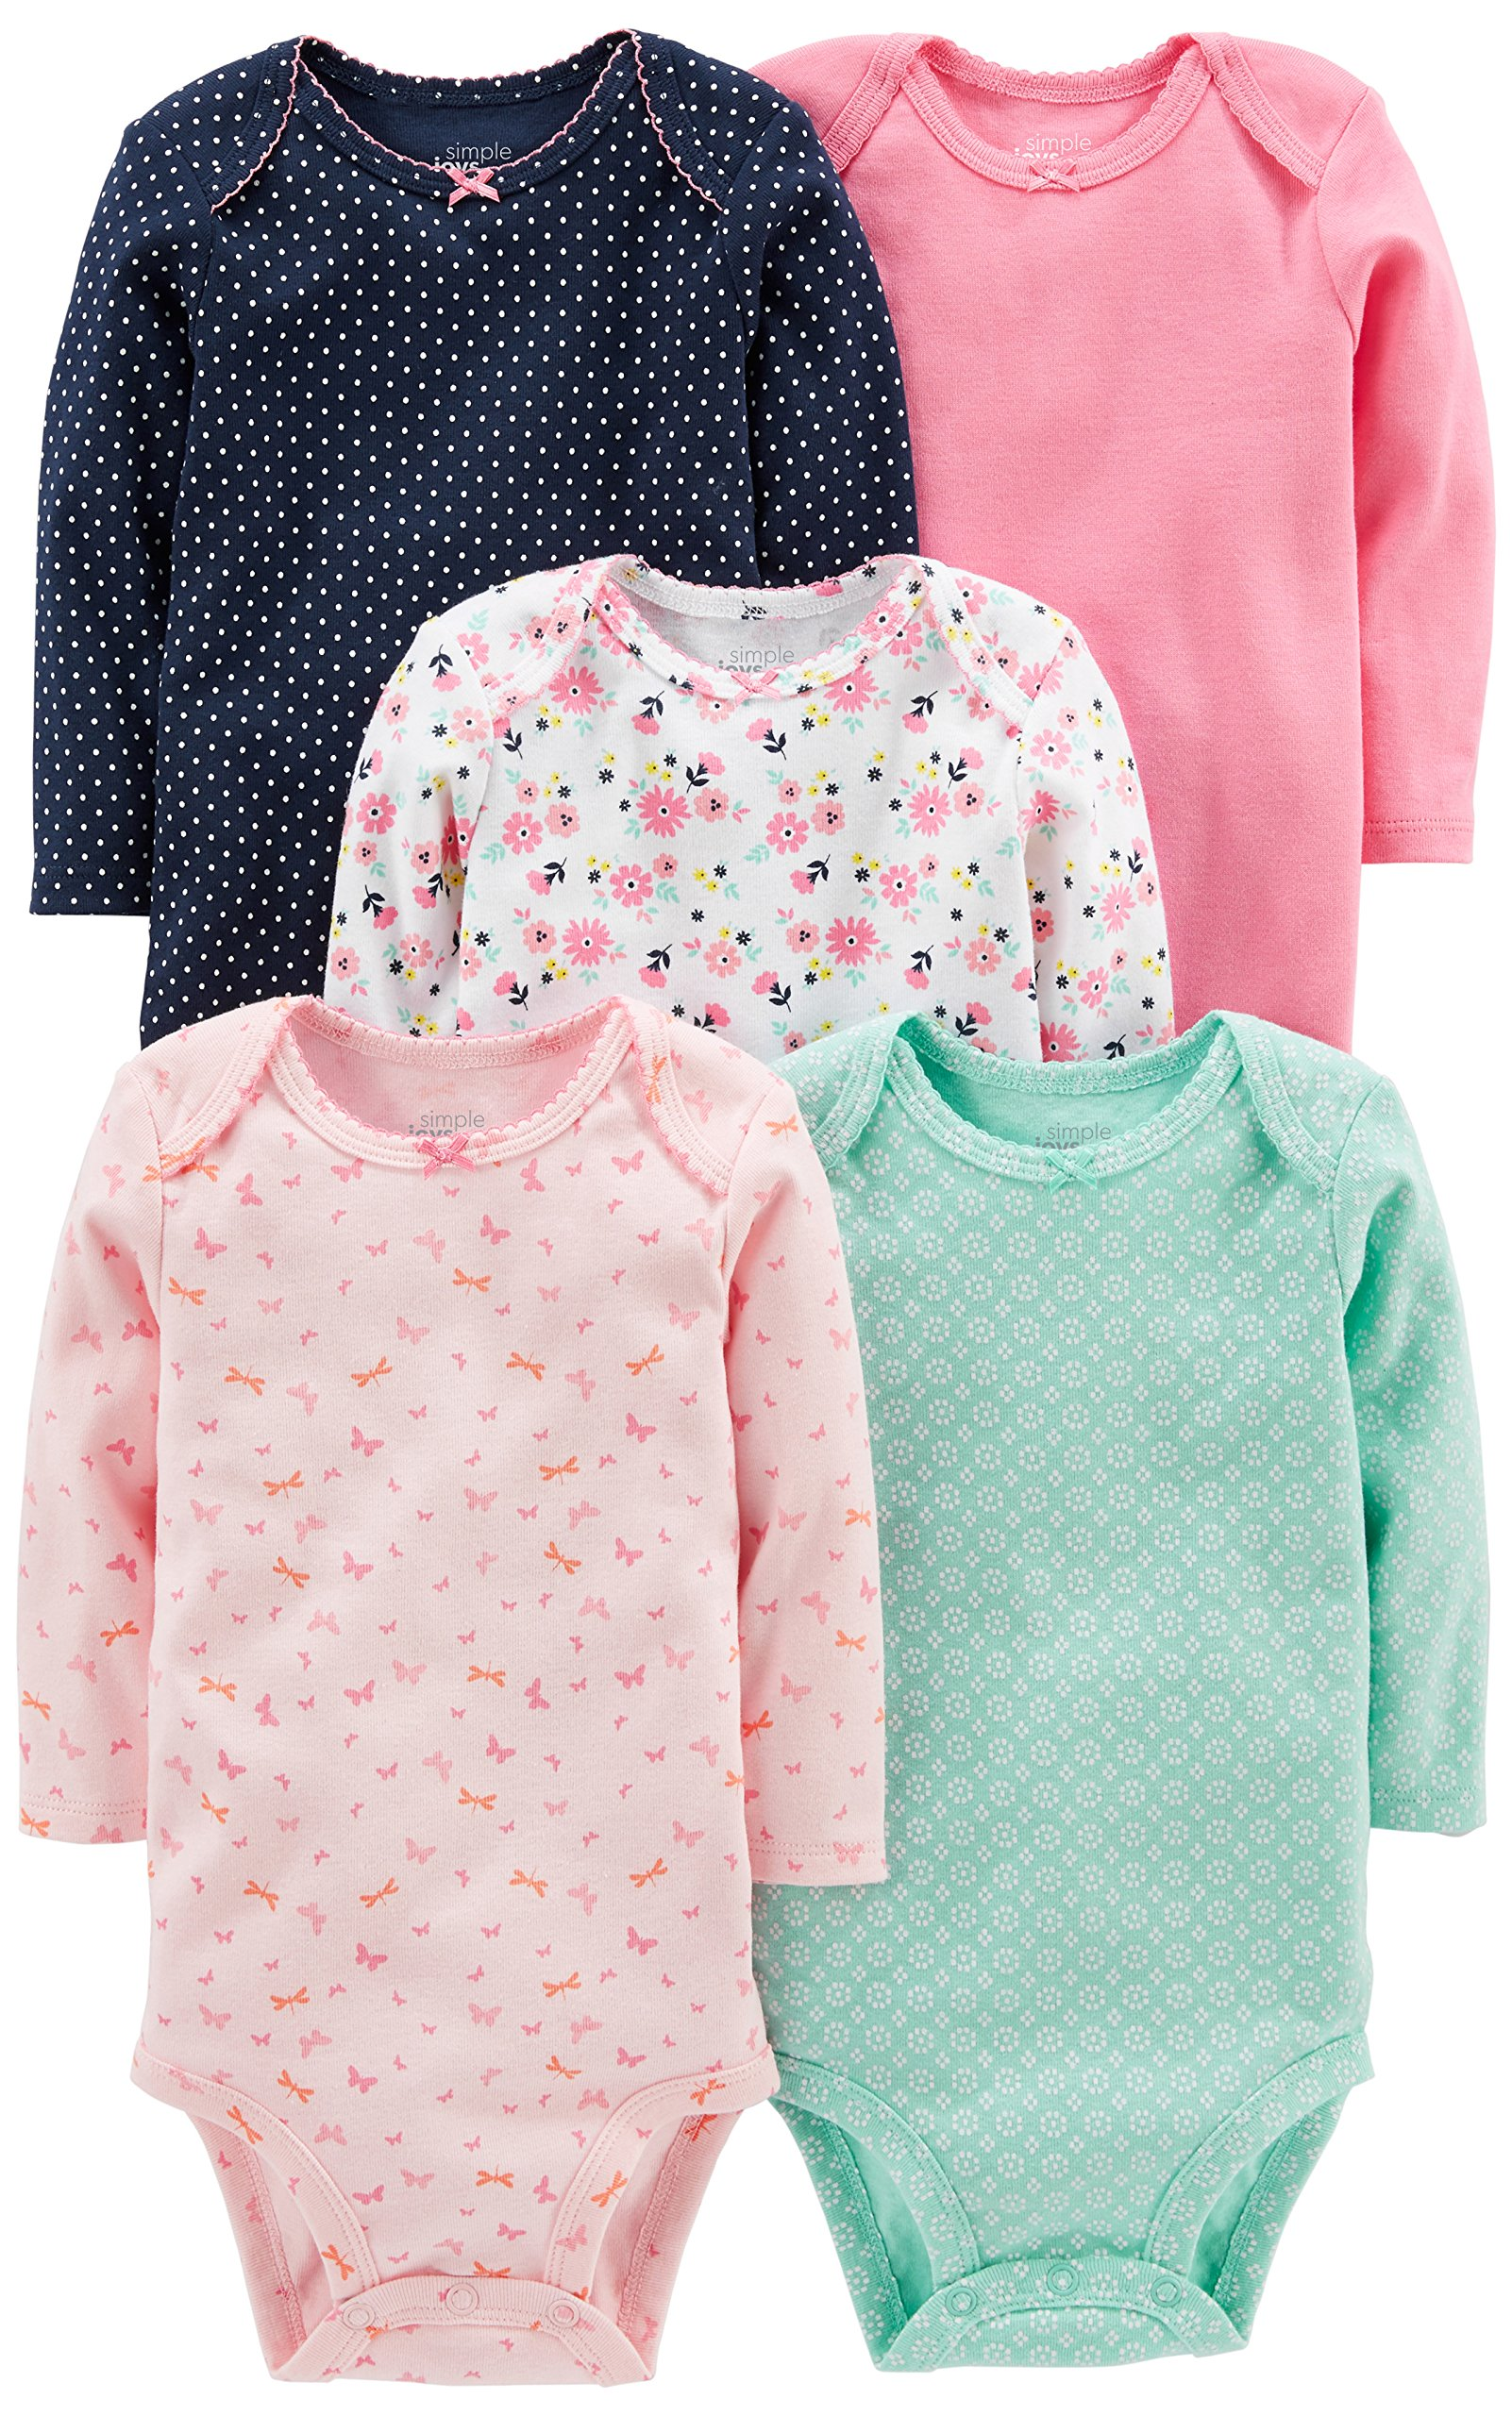 Simple Joys by Carter's Baby Girls' 5-Pack Long-Sleeve Bodysuit, Pink/Navy/Mint, 0-3 Months